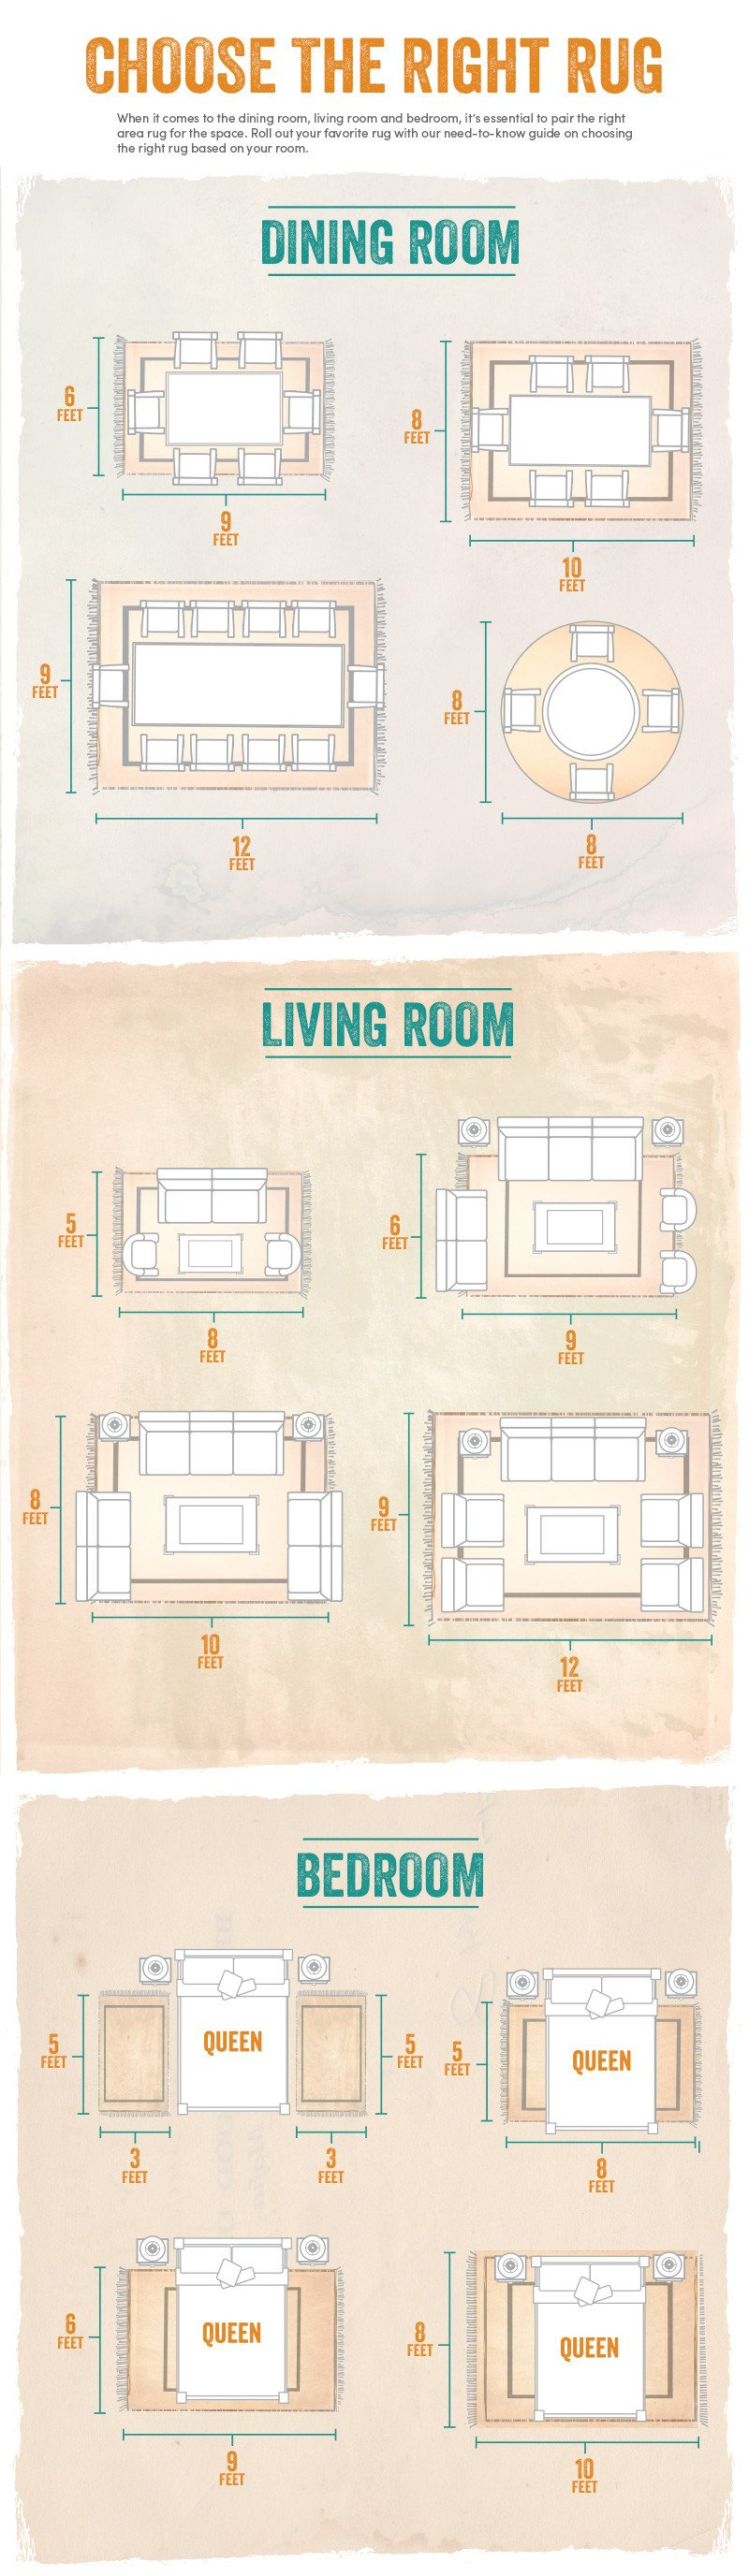 Bedroom area Rug Placement Beautiful How to Choose the Right Type area Rug Carpet